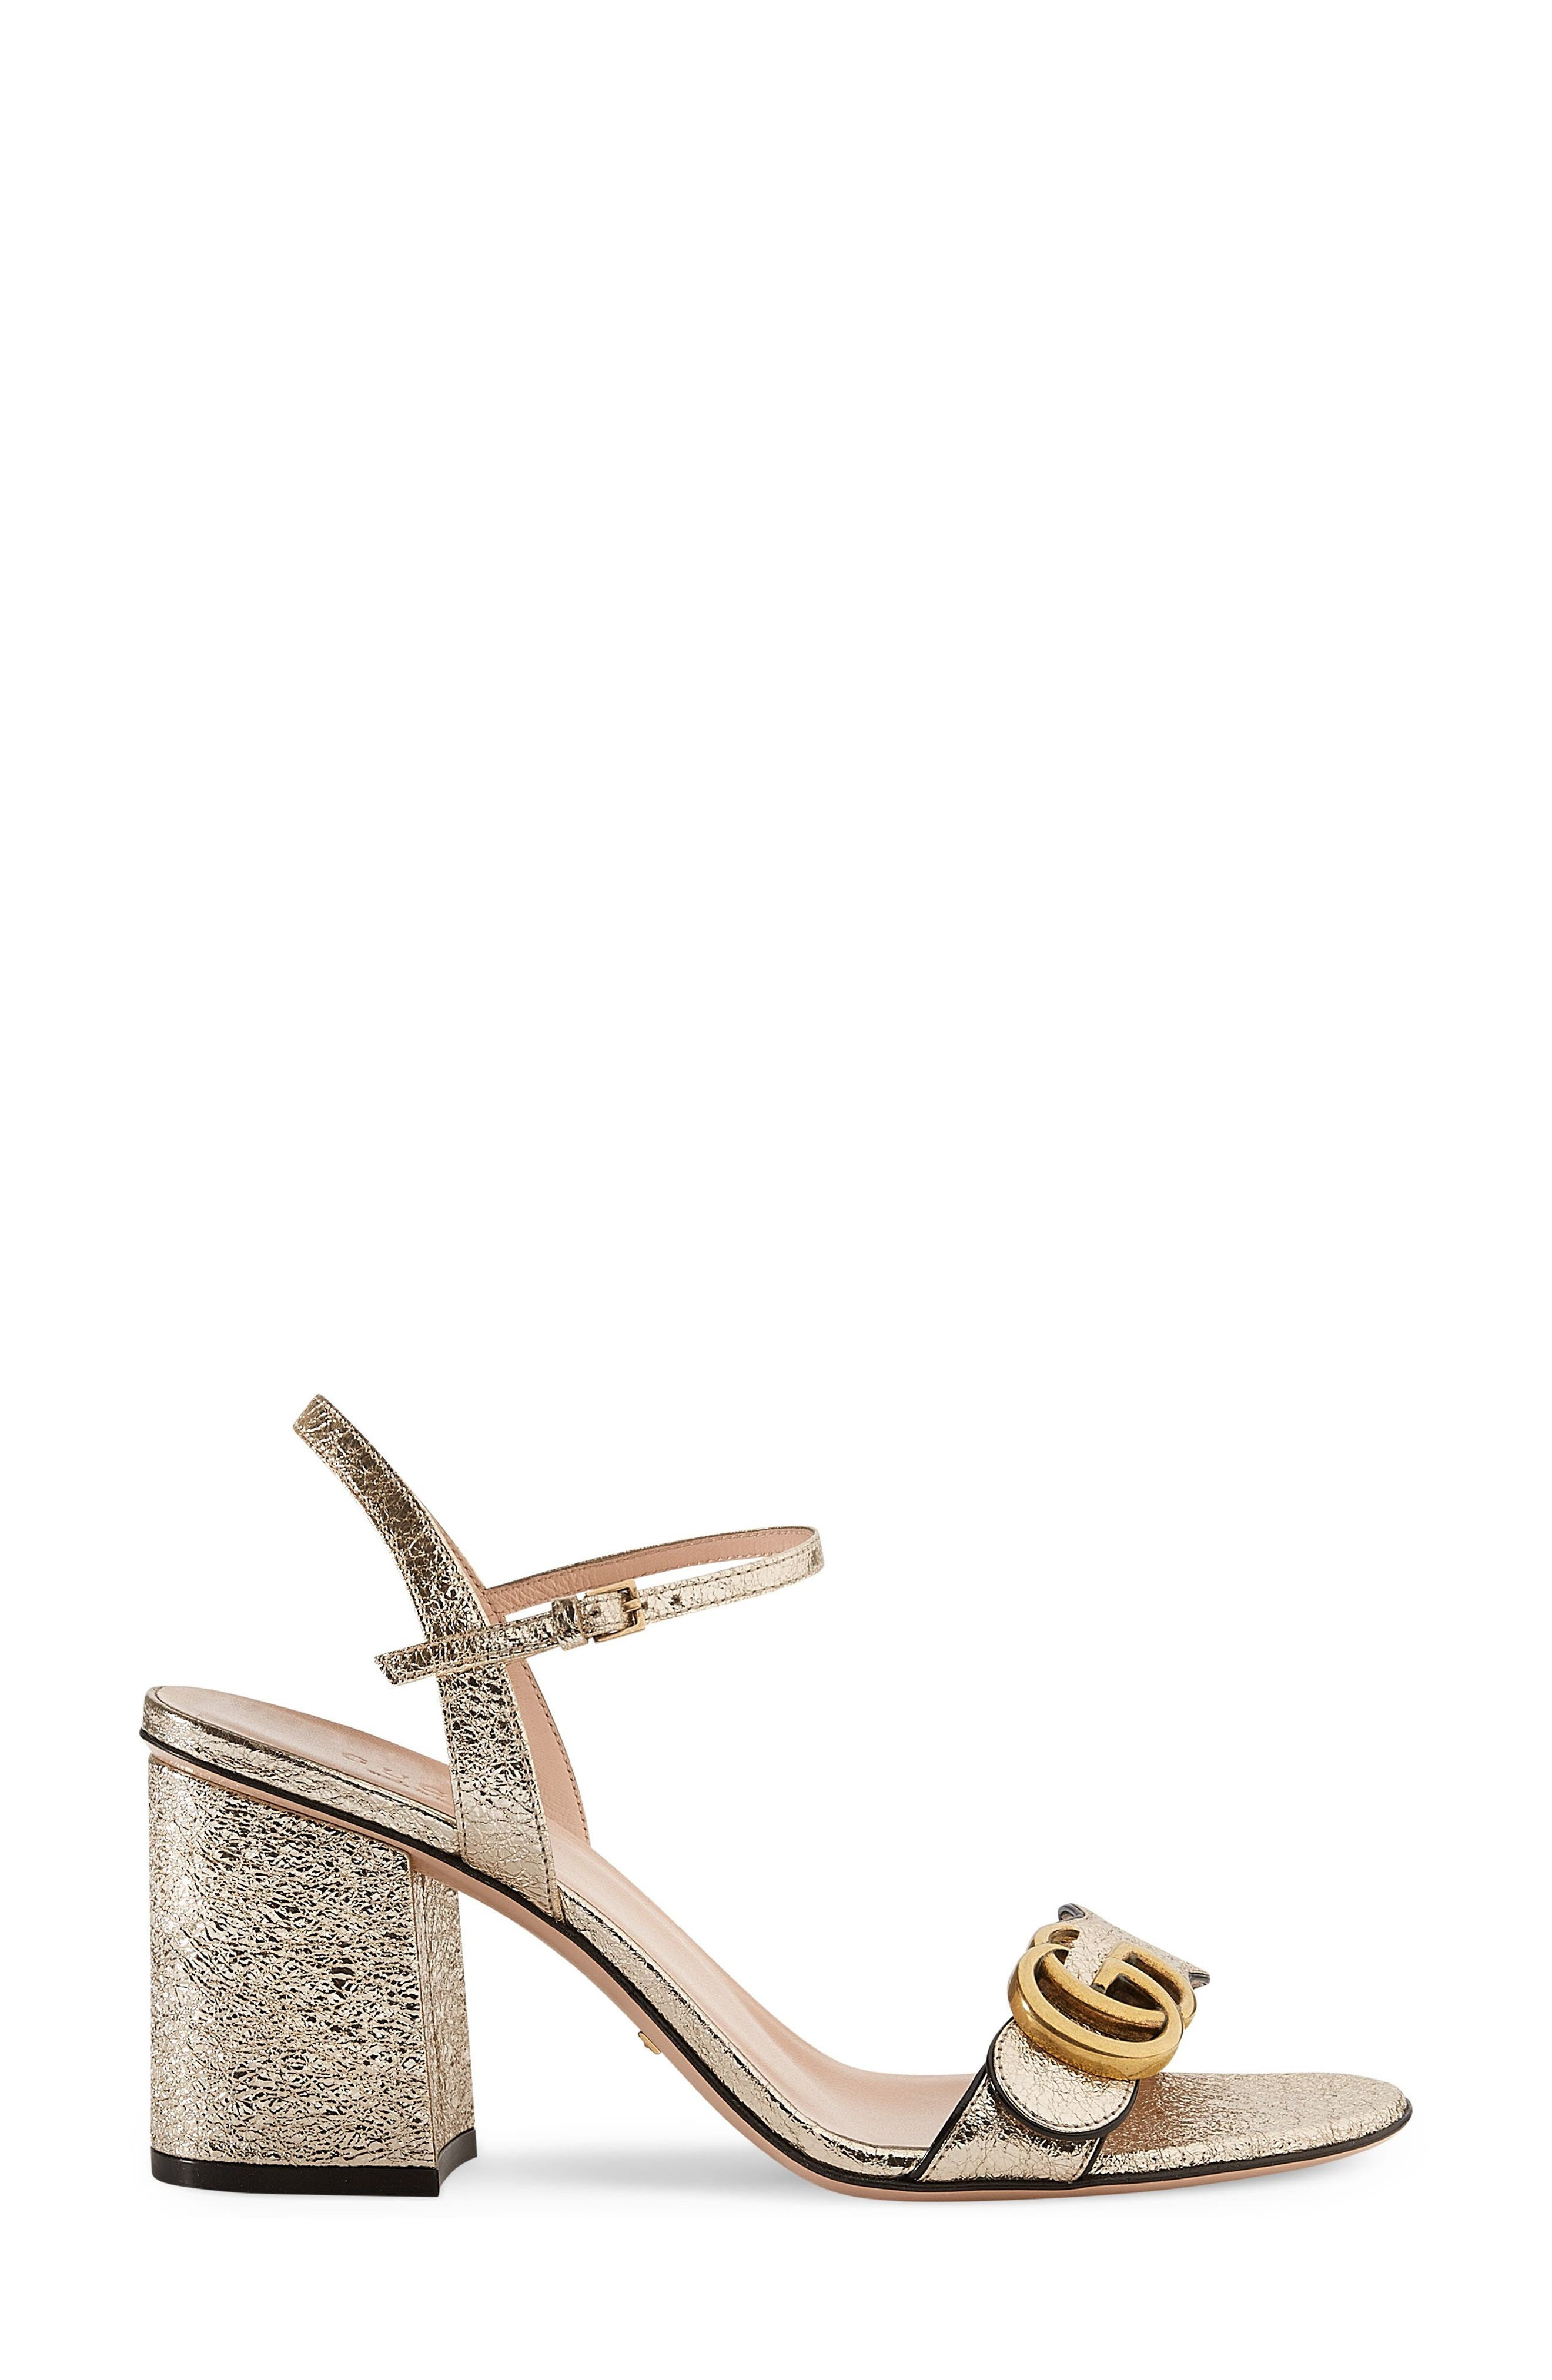 GG Marmont Sandal,                             Main thumbnail 1, color,                             METALLIC GOLD